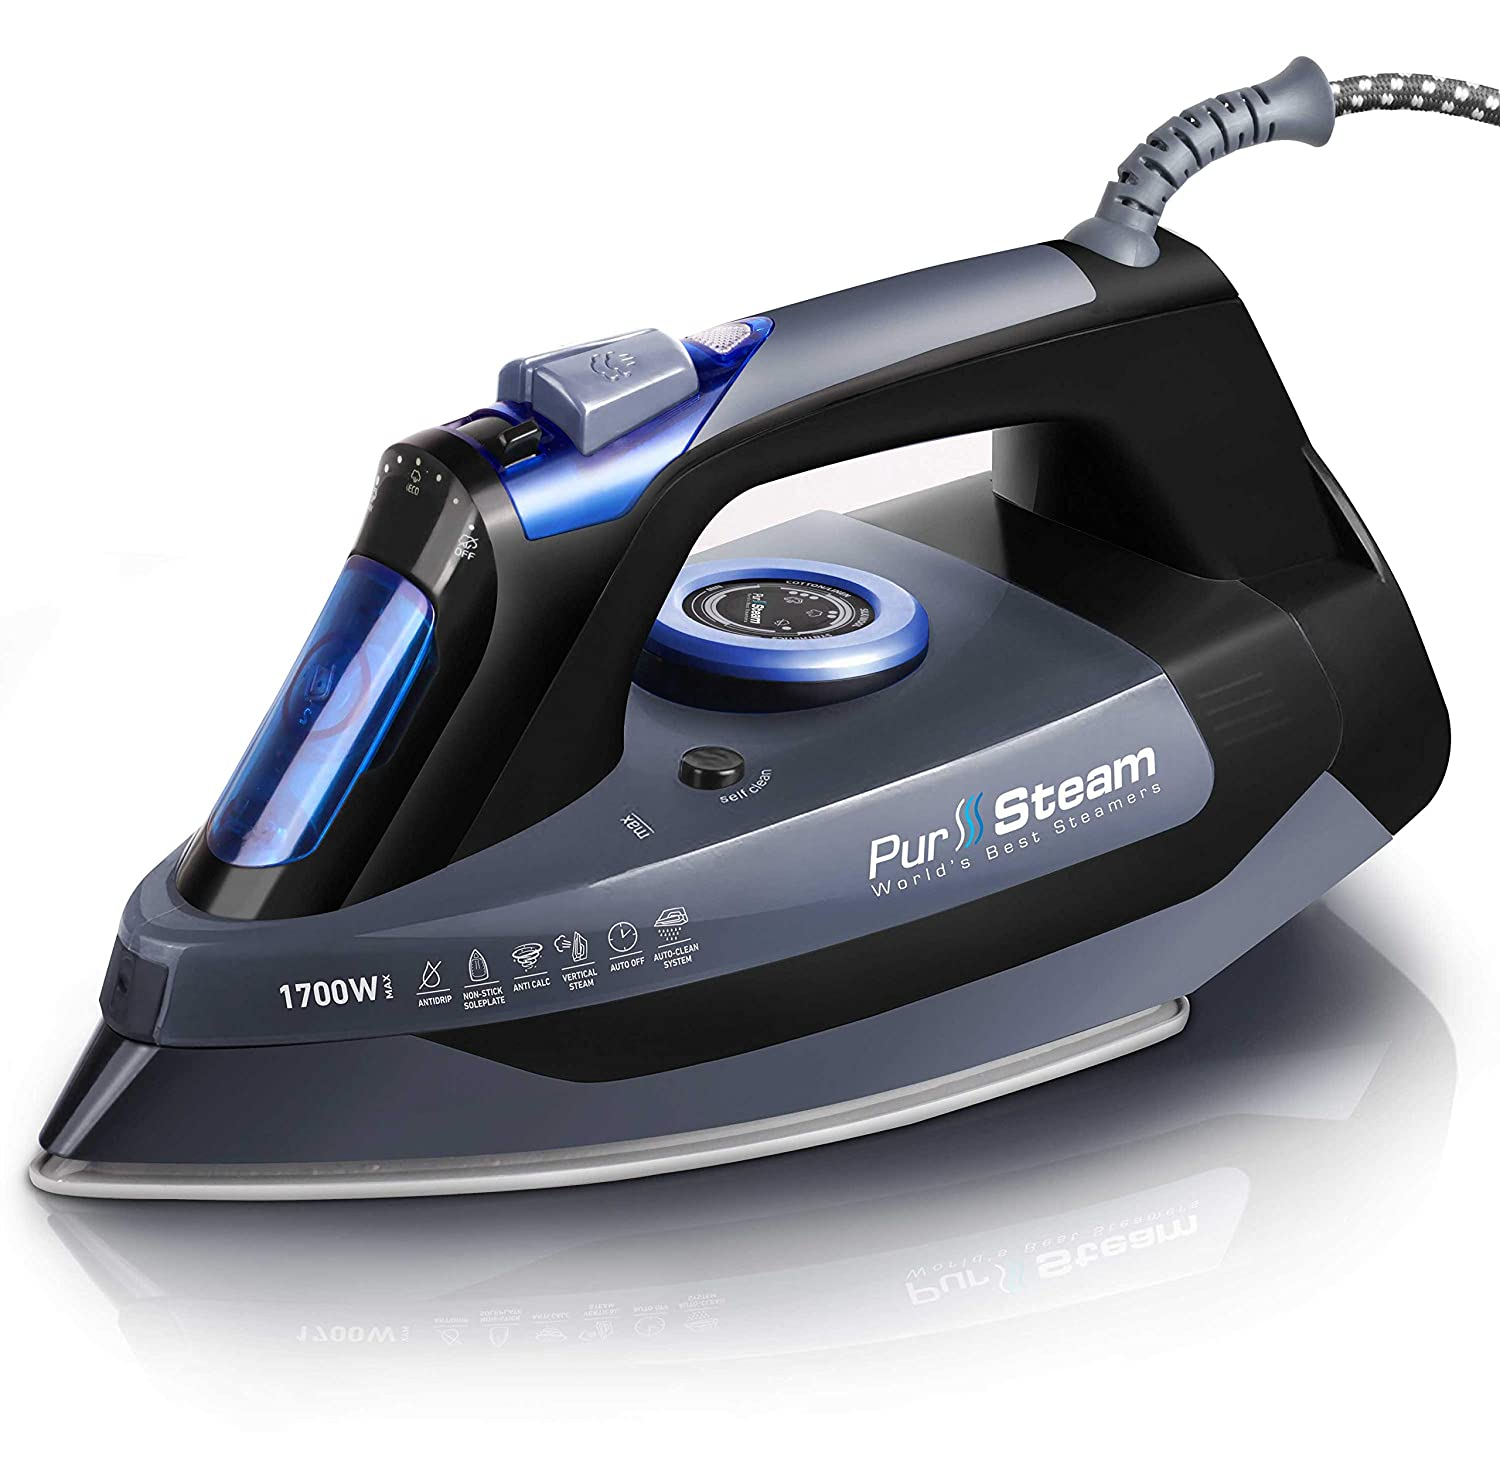 Professional Grade 1700W Steam Iron for Clothes with Rapid Even Heat Scratch Resistant Stainless Steel Sole Plate, True Position Axial Aligned Steam Holes, Self-Cleaning Function + Thermostat Dial